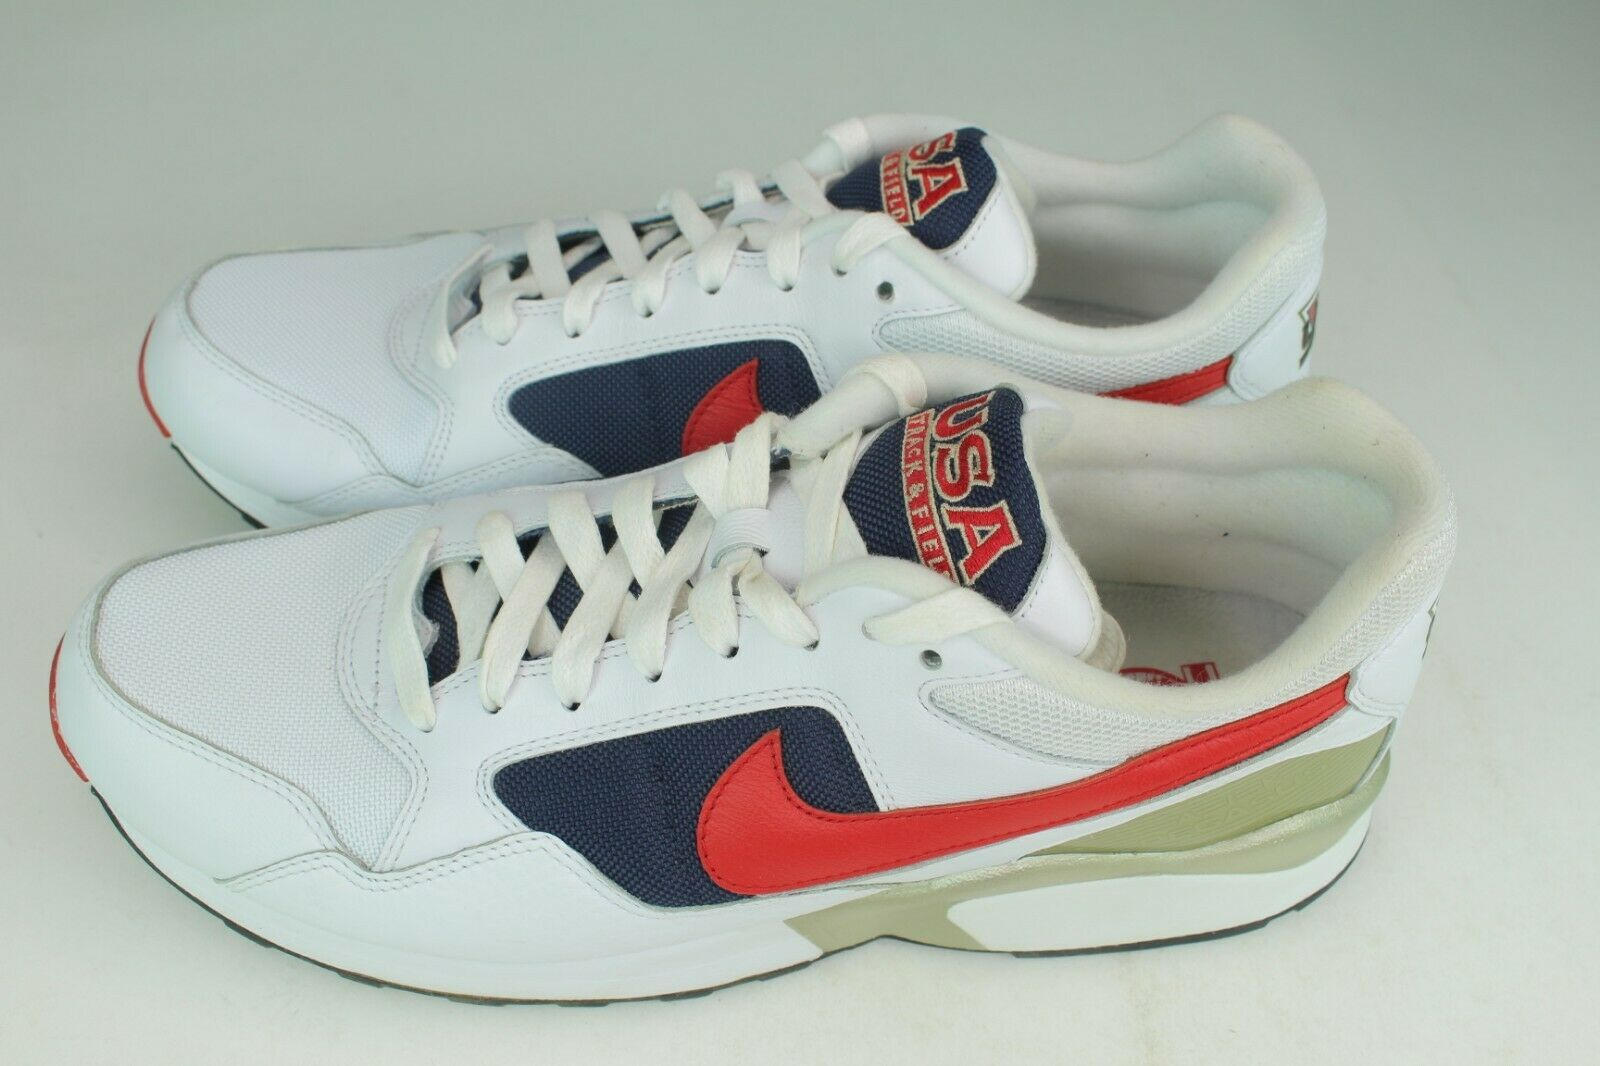 d8ace311 Nike Air Pegasus 92 Premium Sz: 13.0 White and 50 similar items